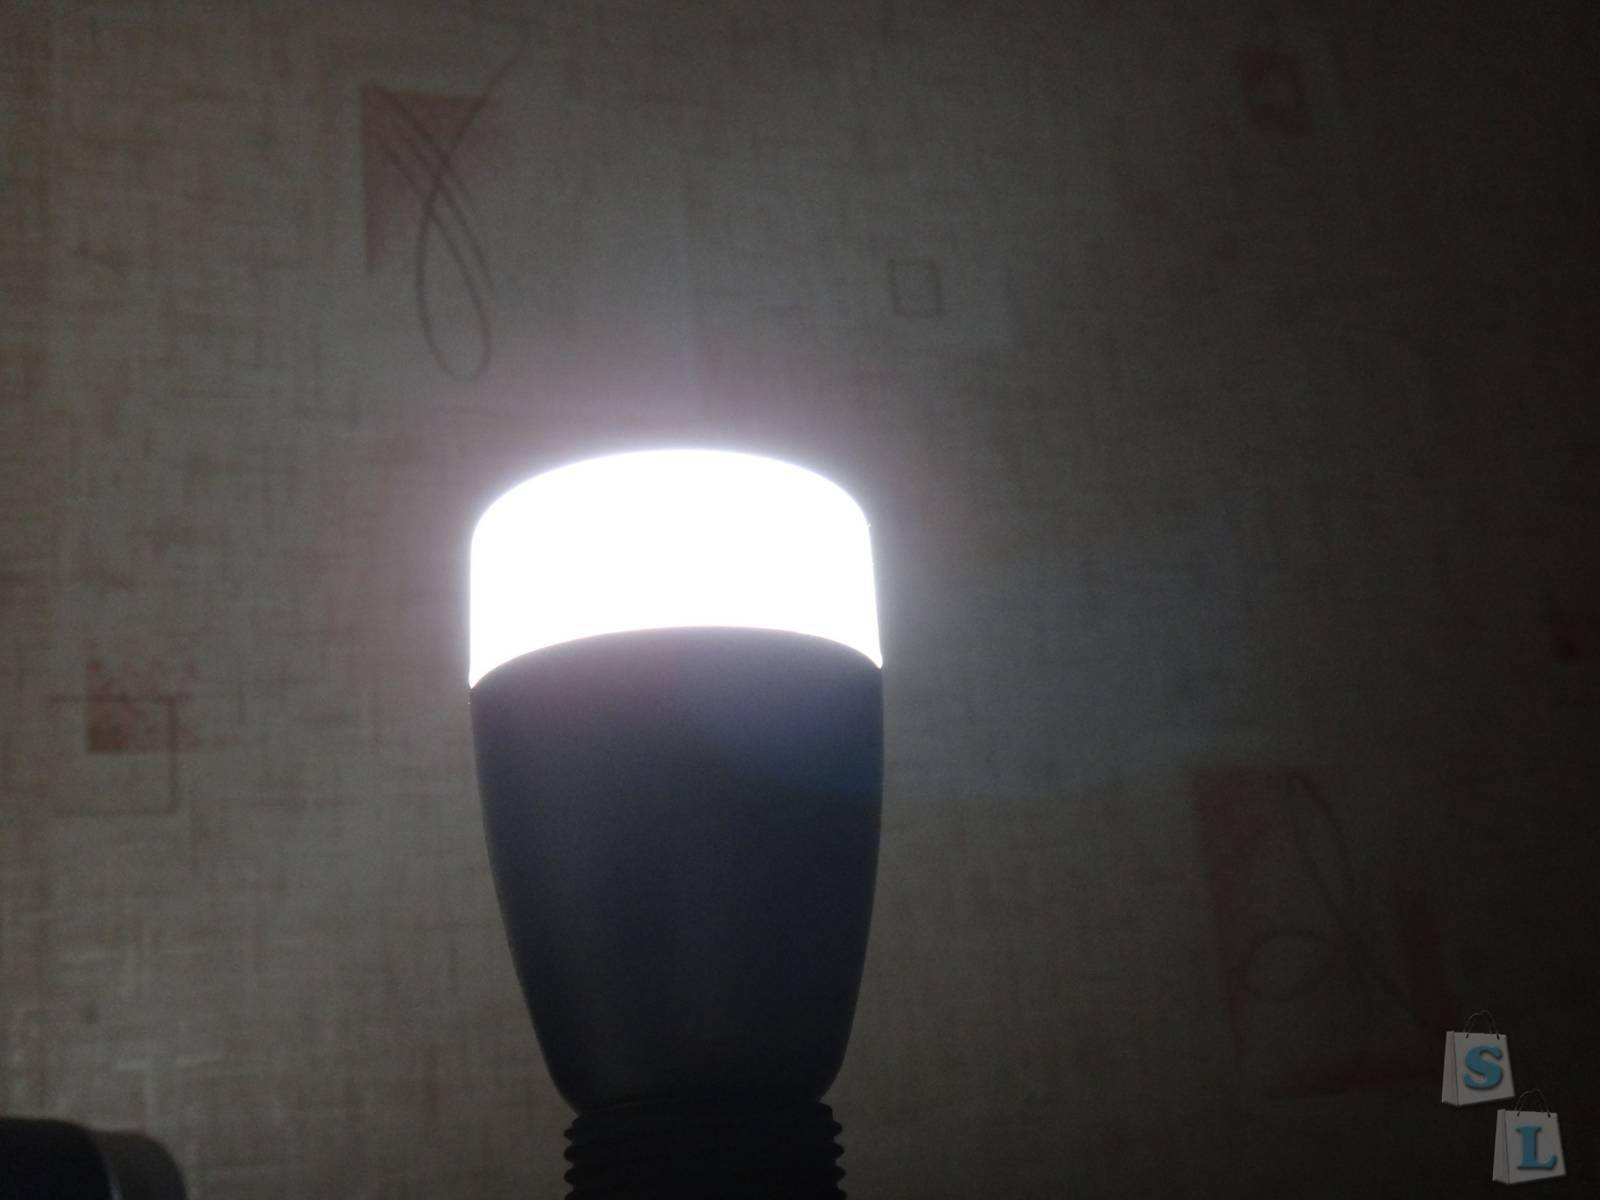 TinyDeal: Обзор Xiaomi Yeelight Mi light  - Bluetooth лампа  или меняй свет и цвет со смартфона E27 6W